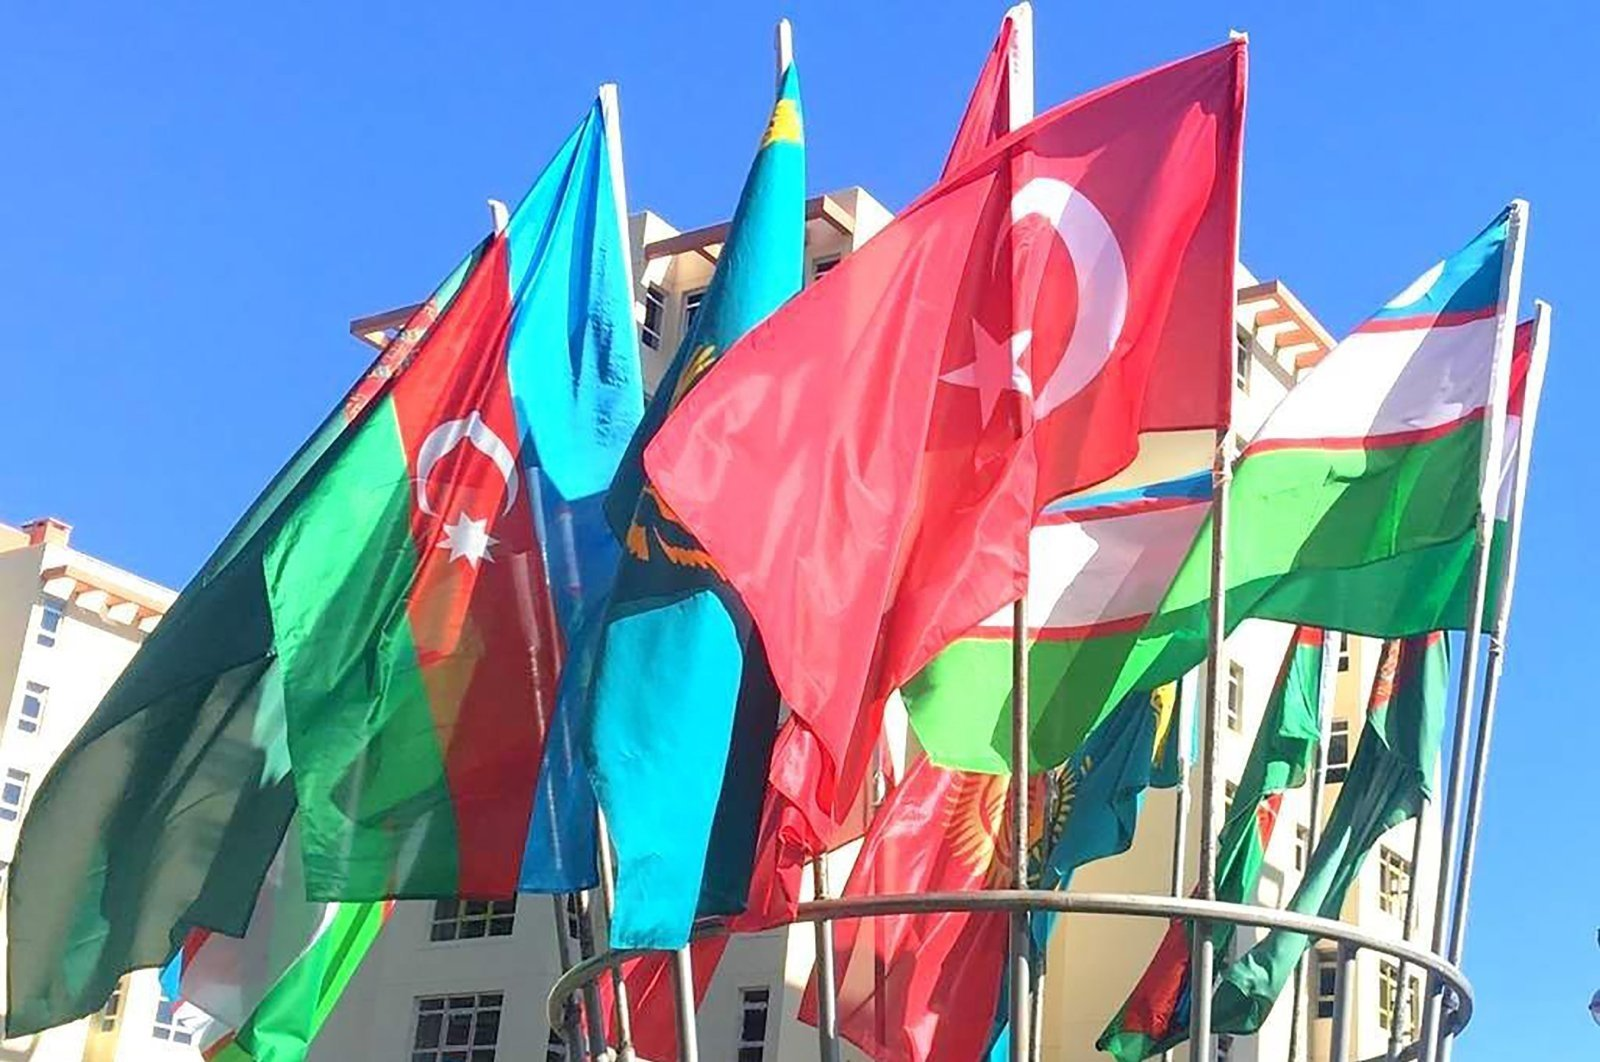 Flags of the countries participating in a Turkic Council meeting seen in Baku, Azerbaijan, Oct. 16, 2019. (Sabah Photo)